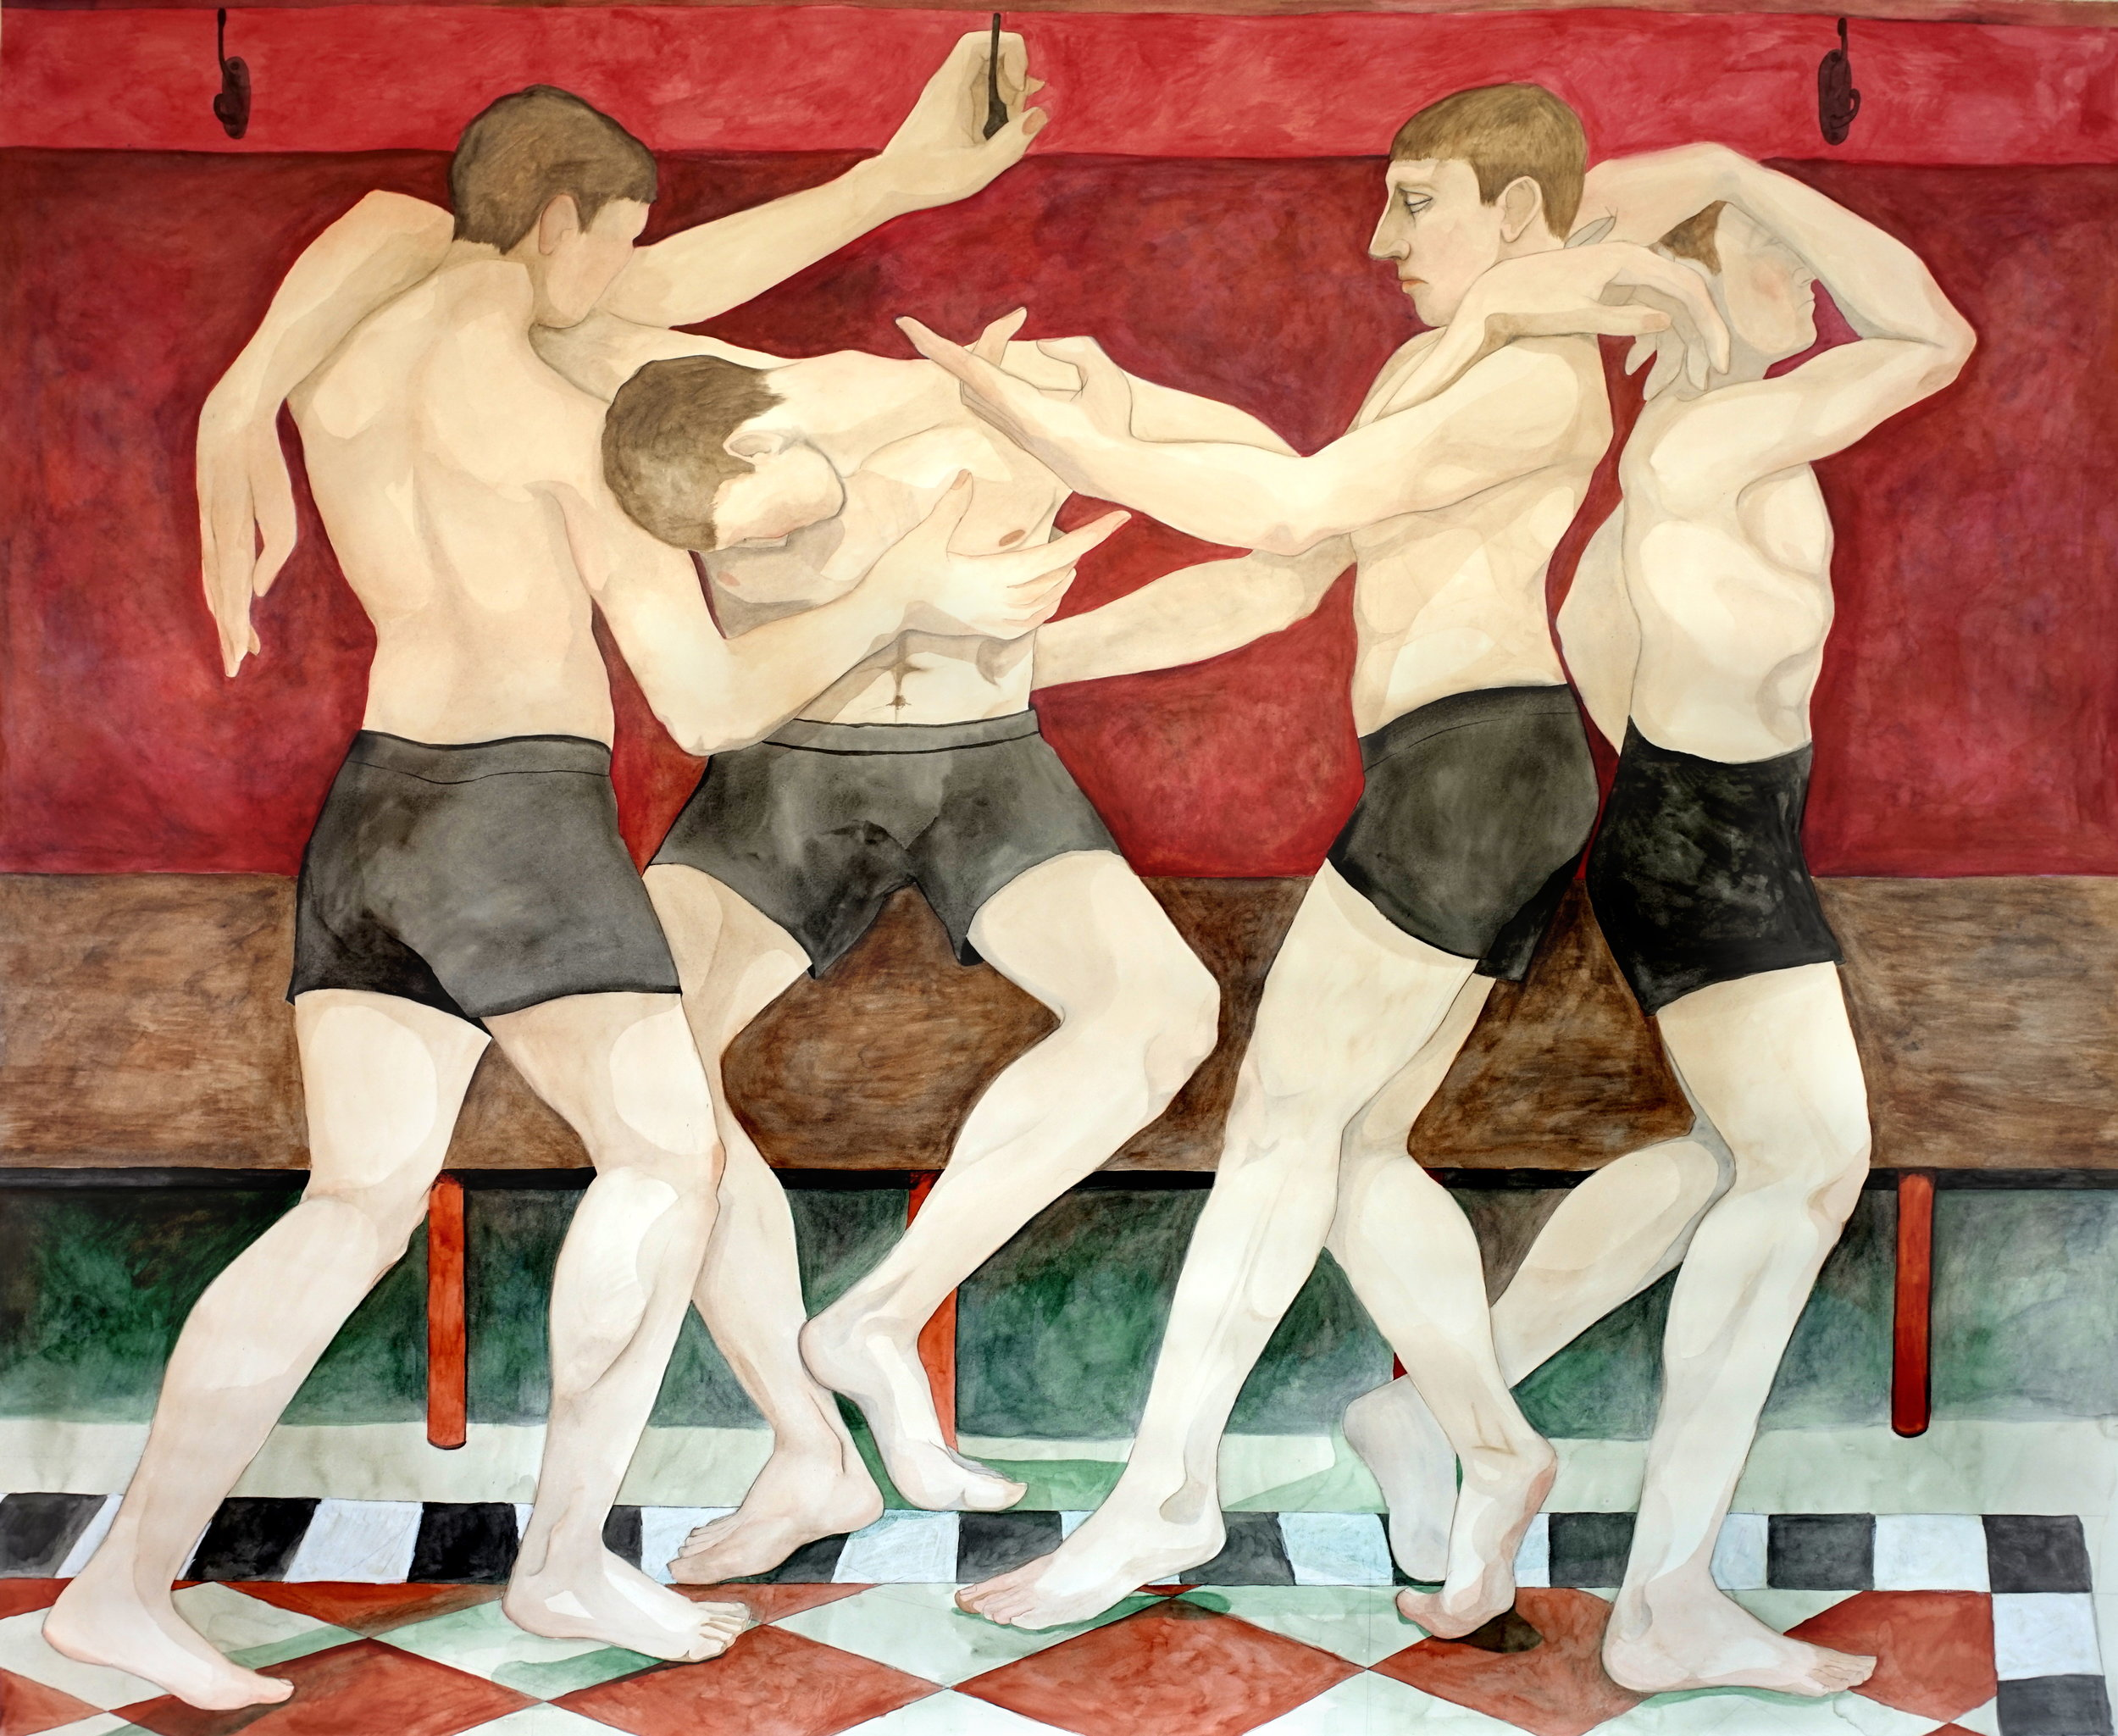 William Brickel. The Bullies, 2019, watercolours on paper, 152 x 170 cm